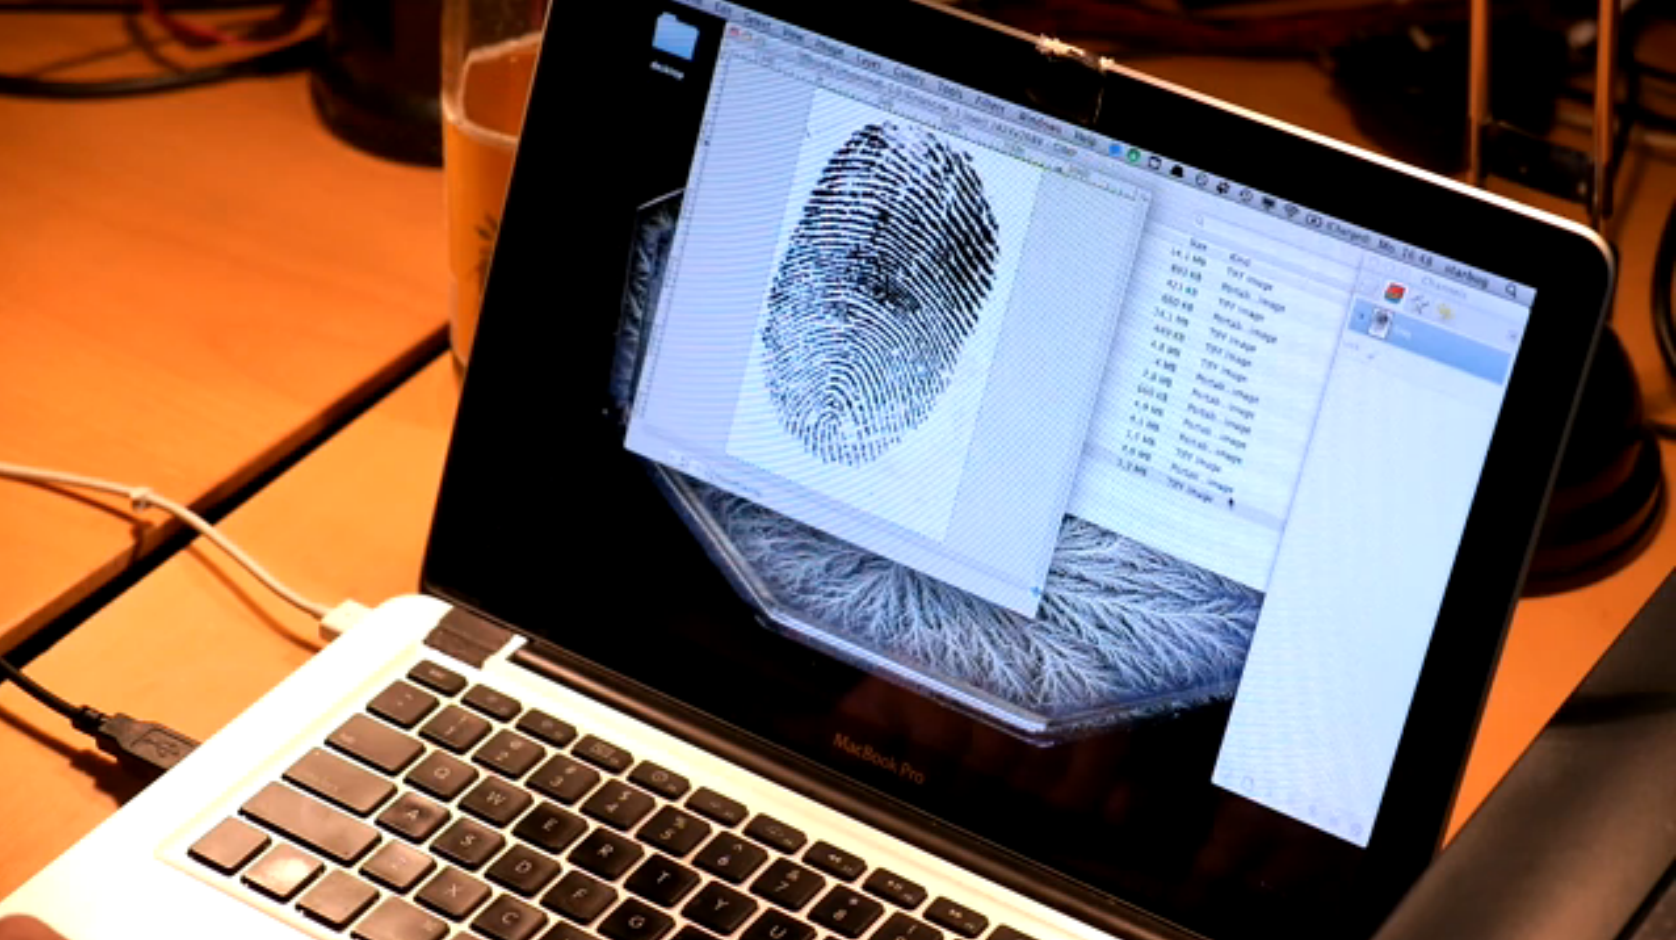 Touch ID hacking